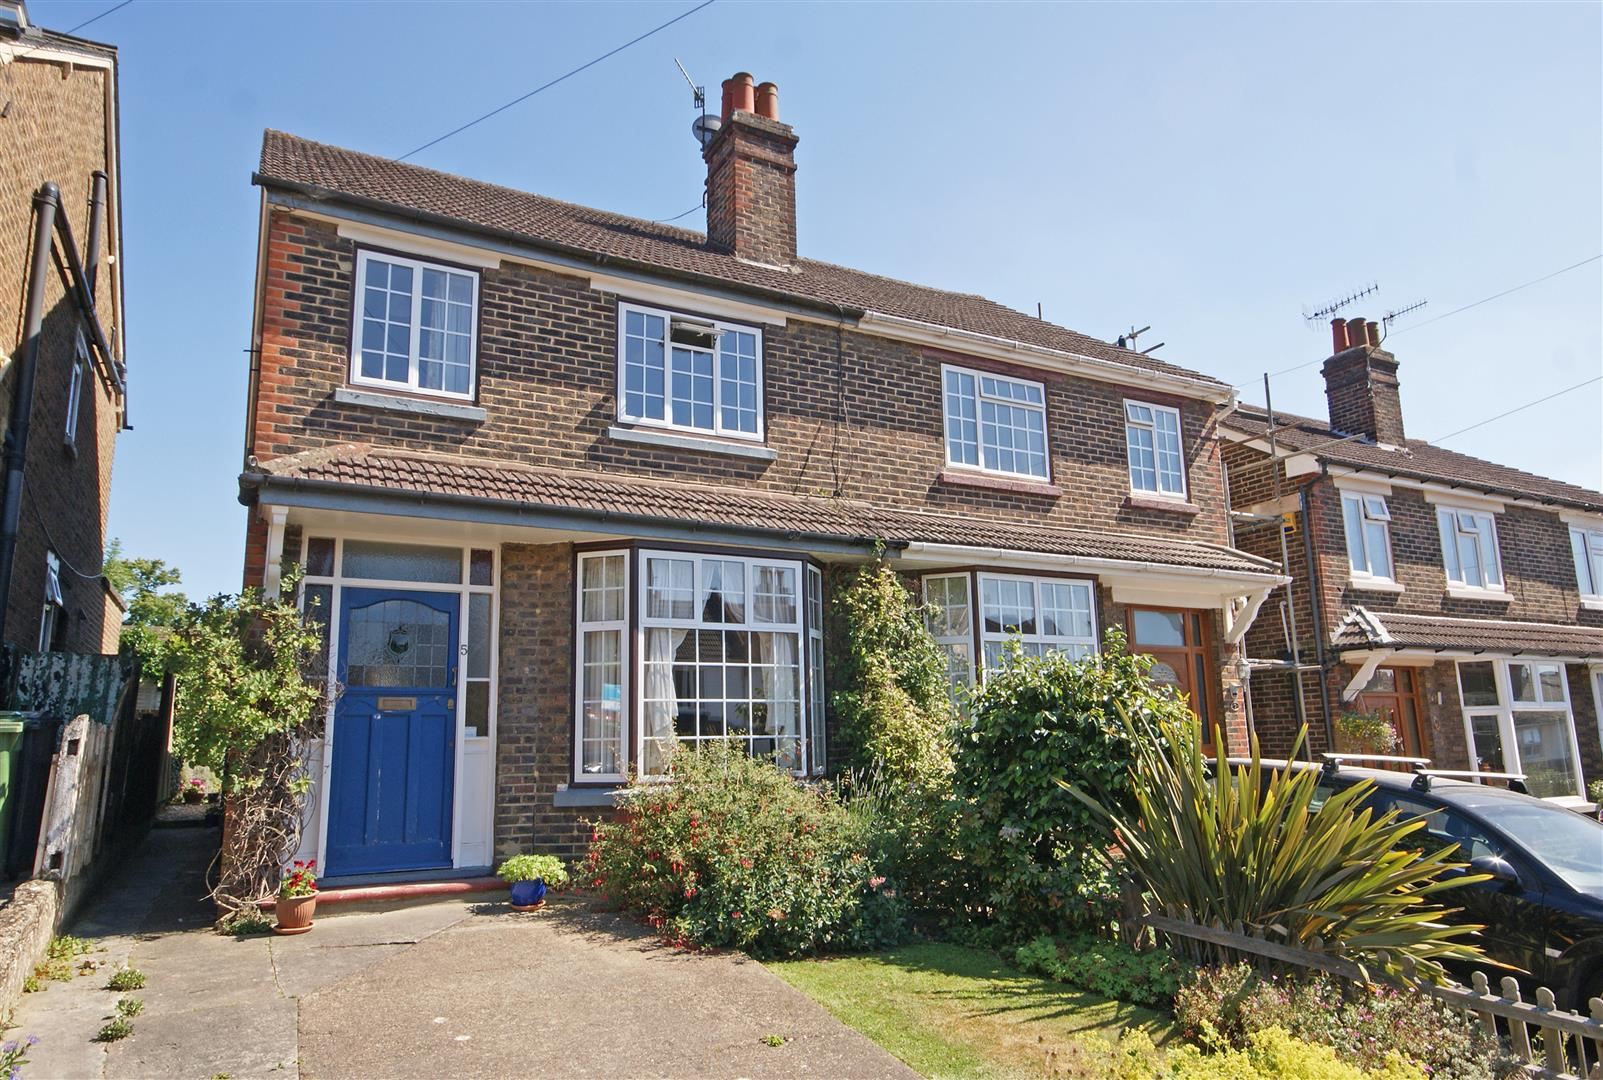 3 Bedroom House For Sale Knighton Road Redhill Surrey Rh1 6eh